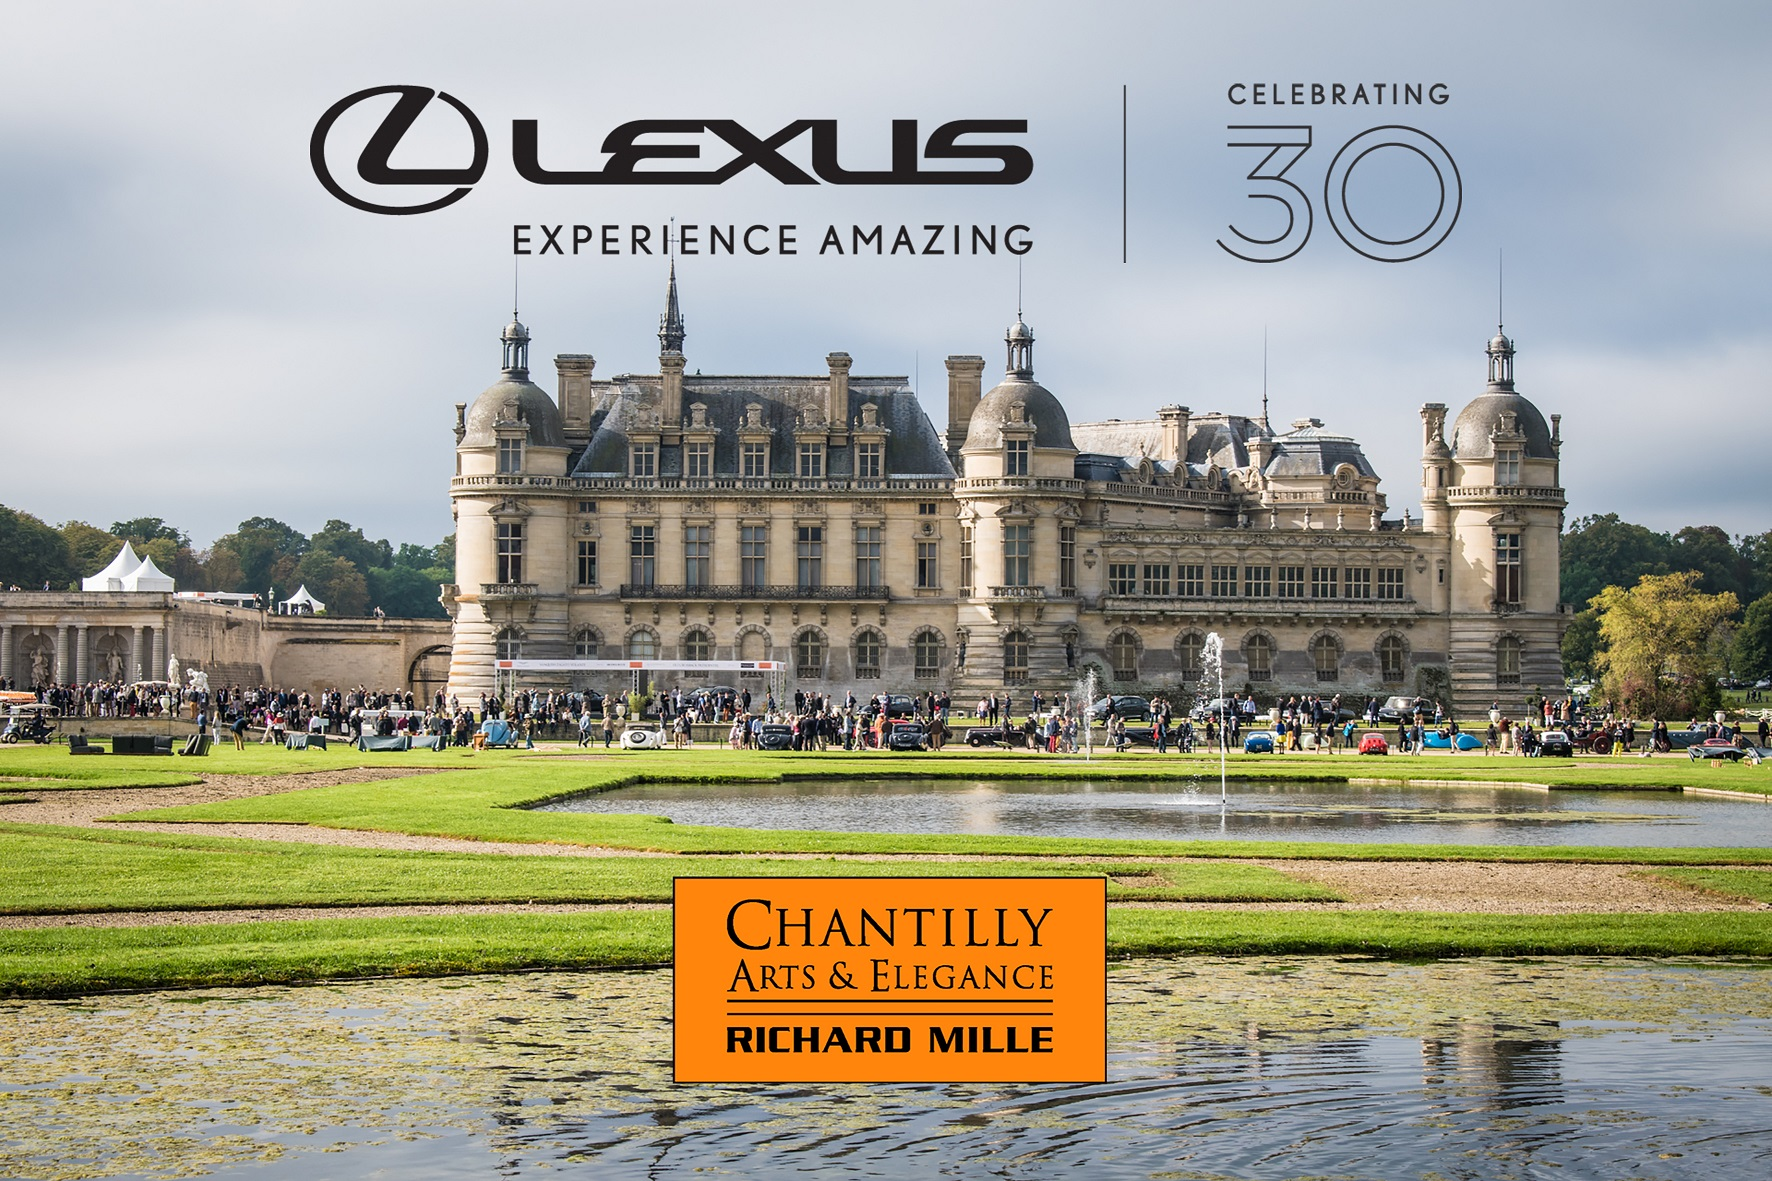 Lexus celebra aniversario no chantilly arts